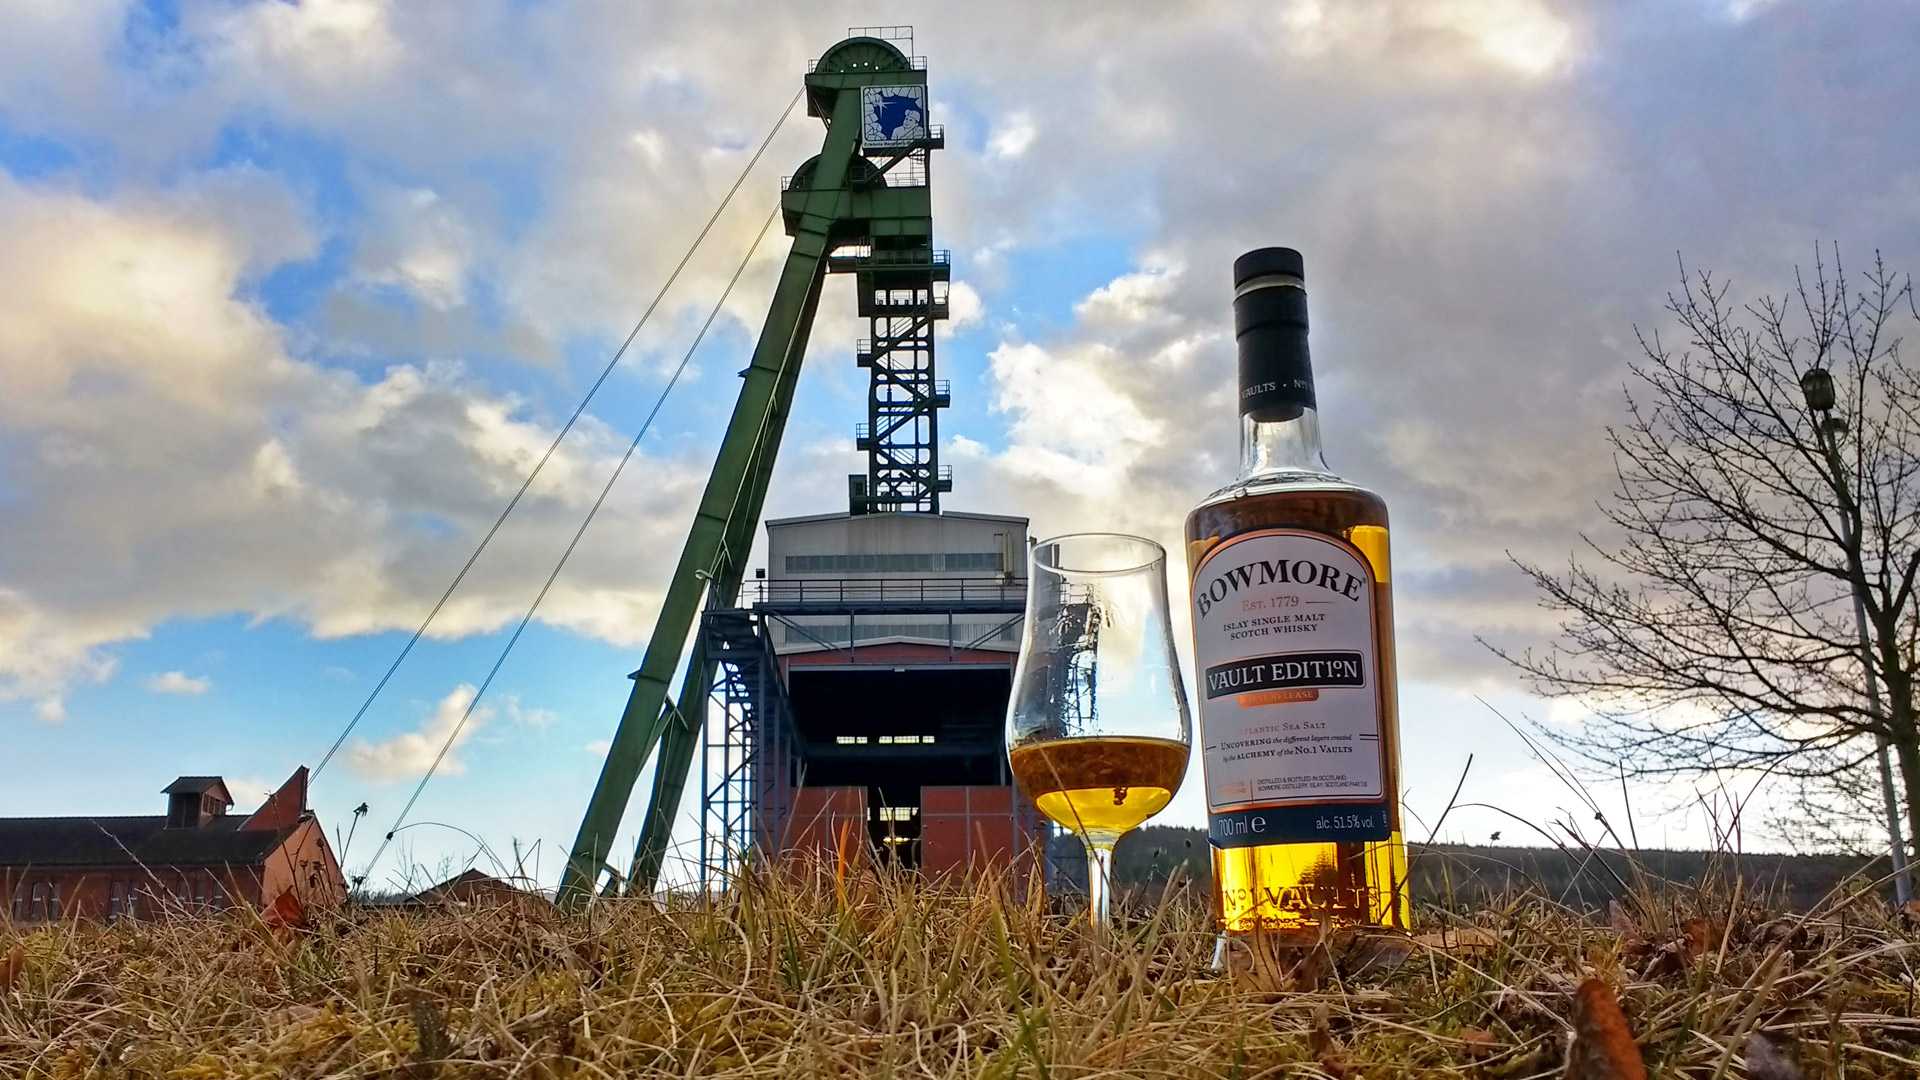 Der Bowmore Atlantic Sea Salt im Abendlicht. (Foto: Malt Whisky)